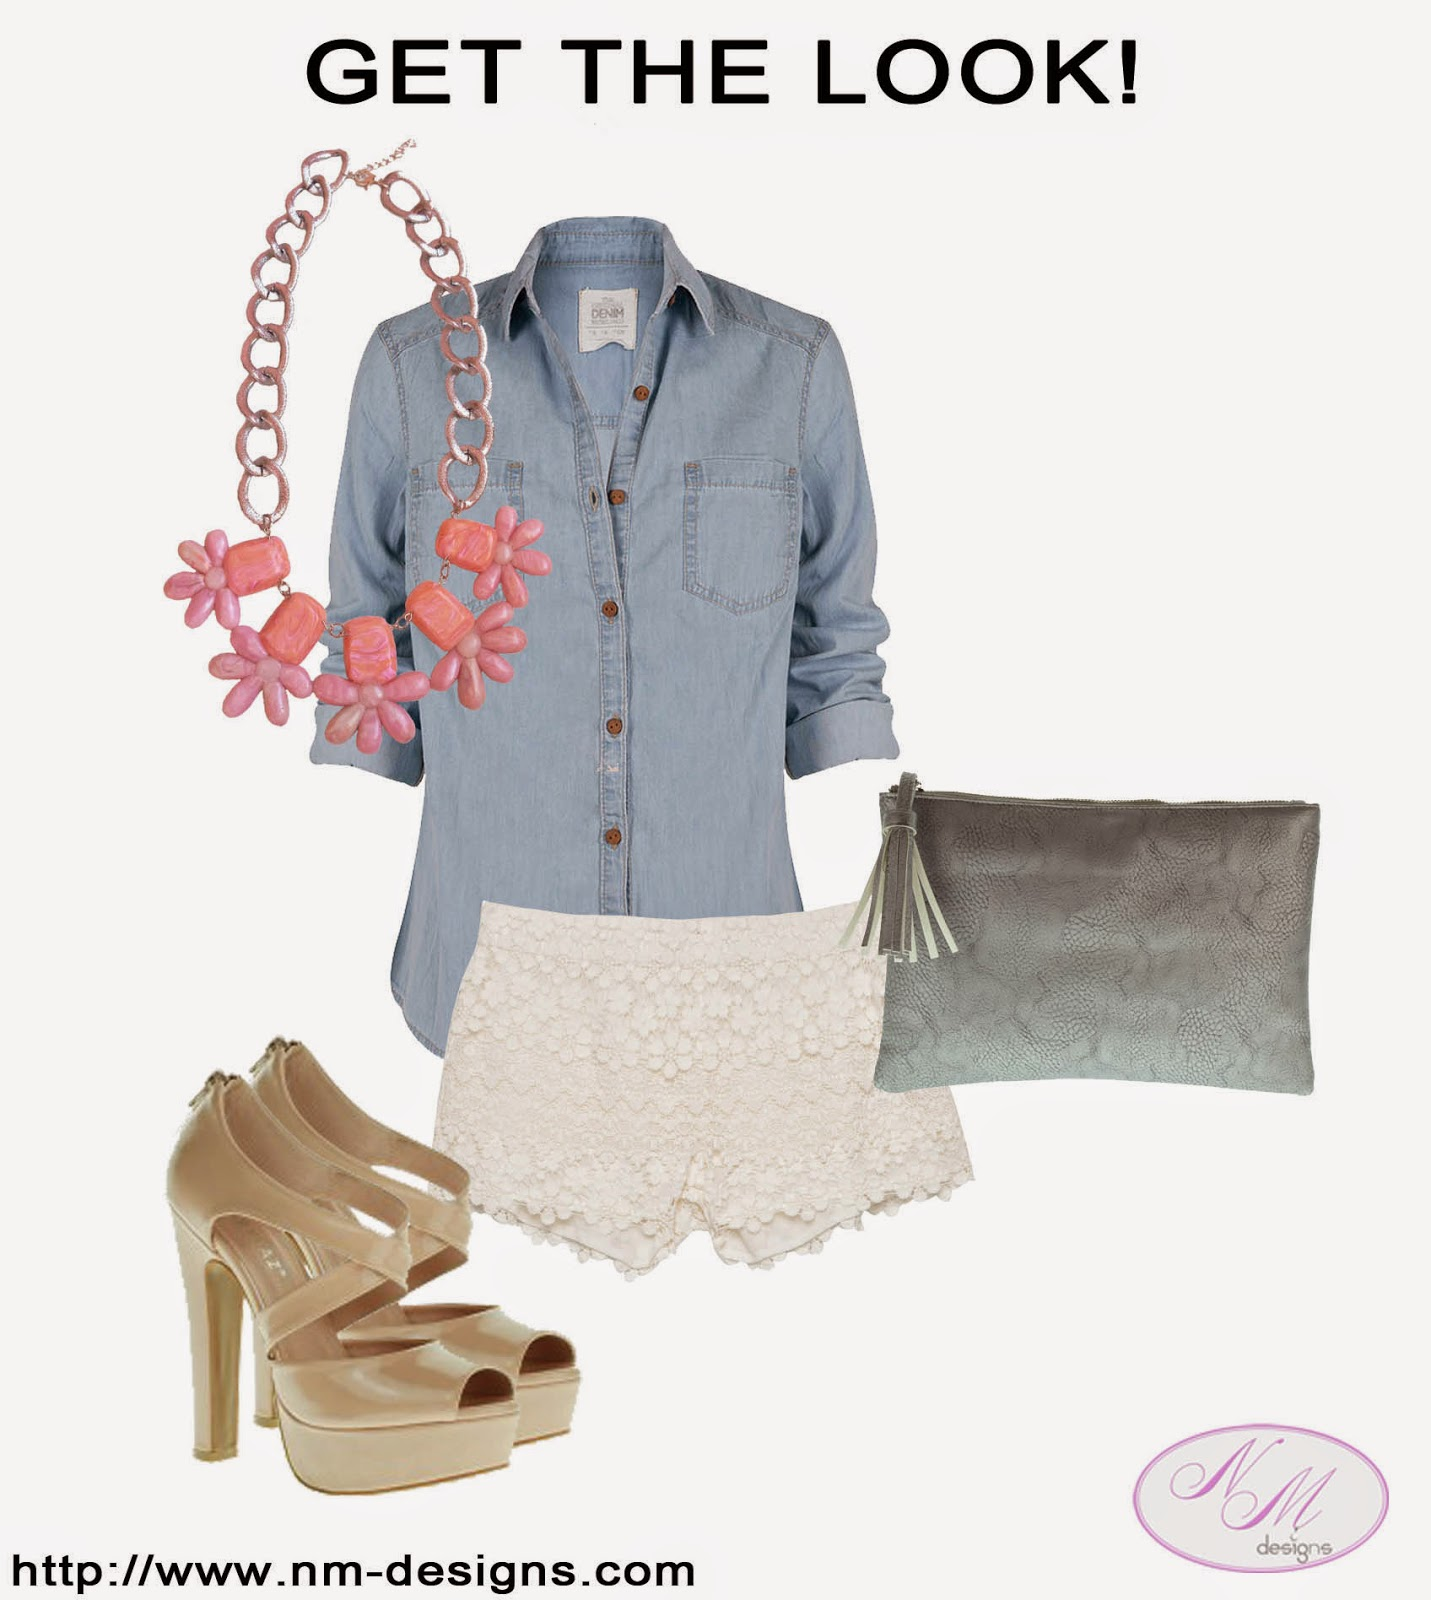 """GET THE LOOK"" from August 14, 2014"